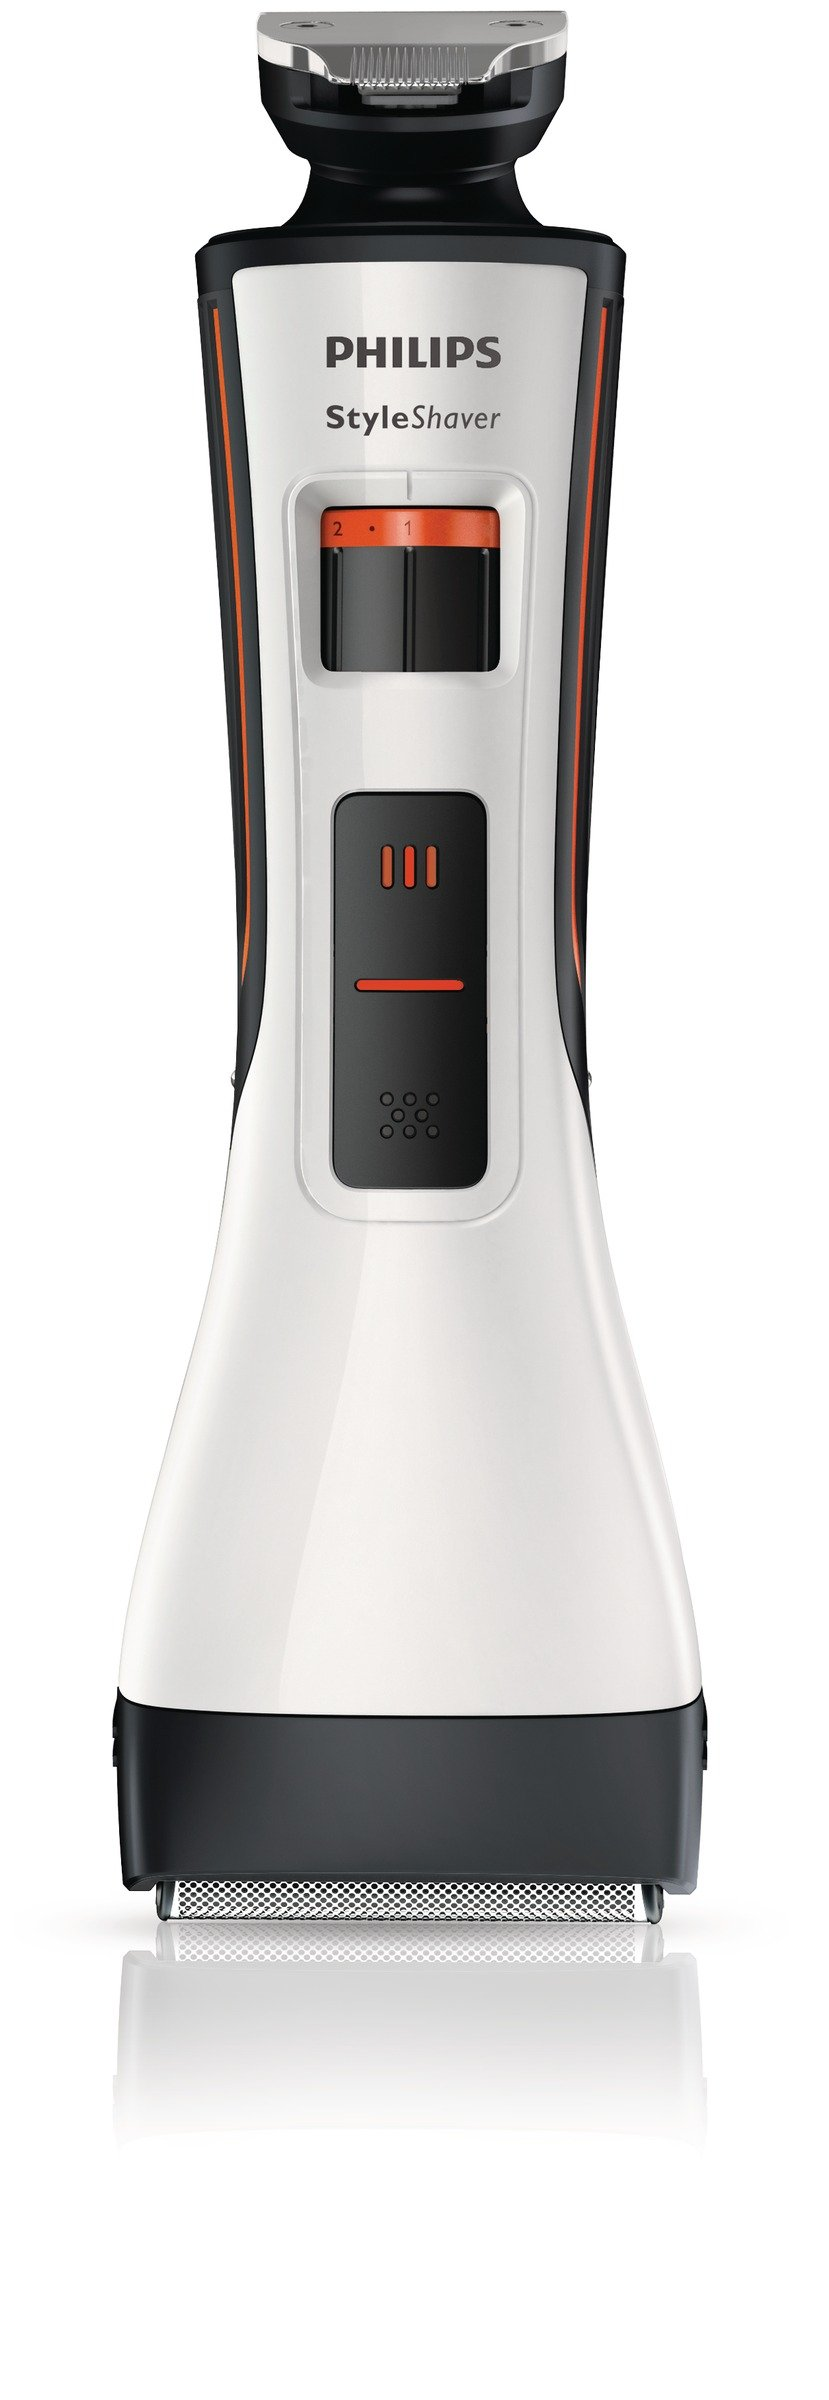 Philips QS6141/33 Style Shaver Waterproof Shaver & Styler with AquaTec Wet & Dry.